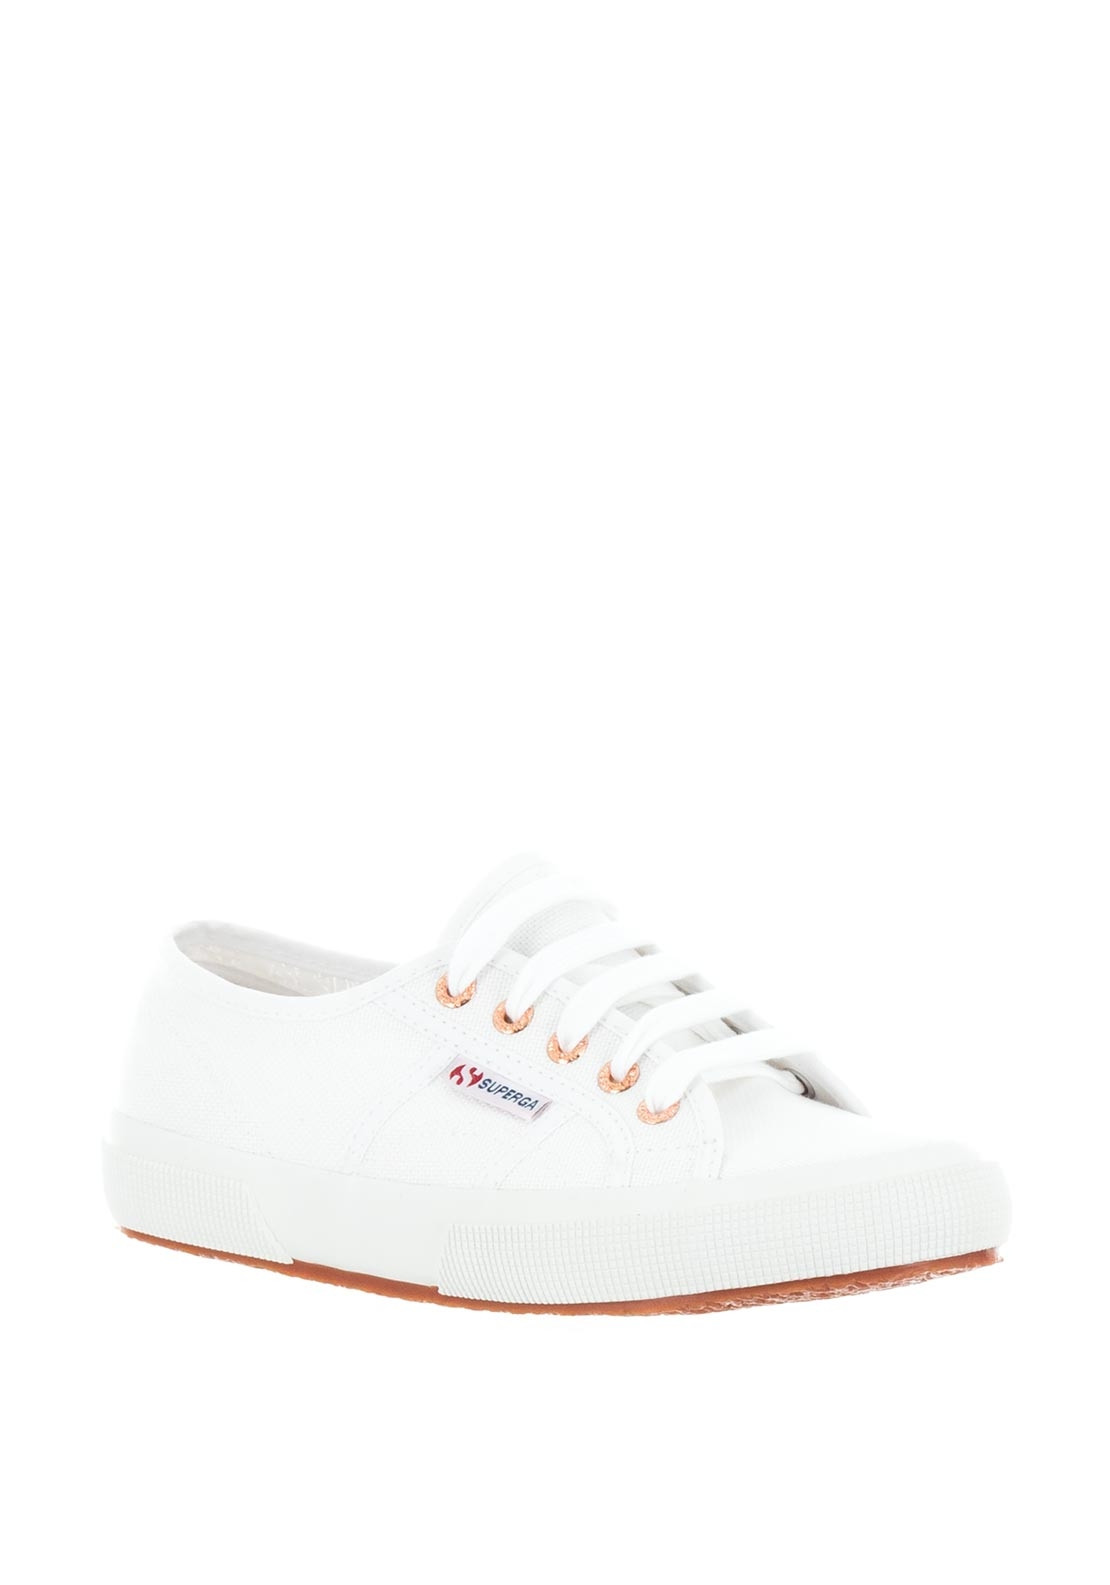 mode nya lägre priser heta produkter Superga Cotu Classic Canvas Trainers, White and Rose Gold ...